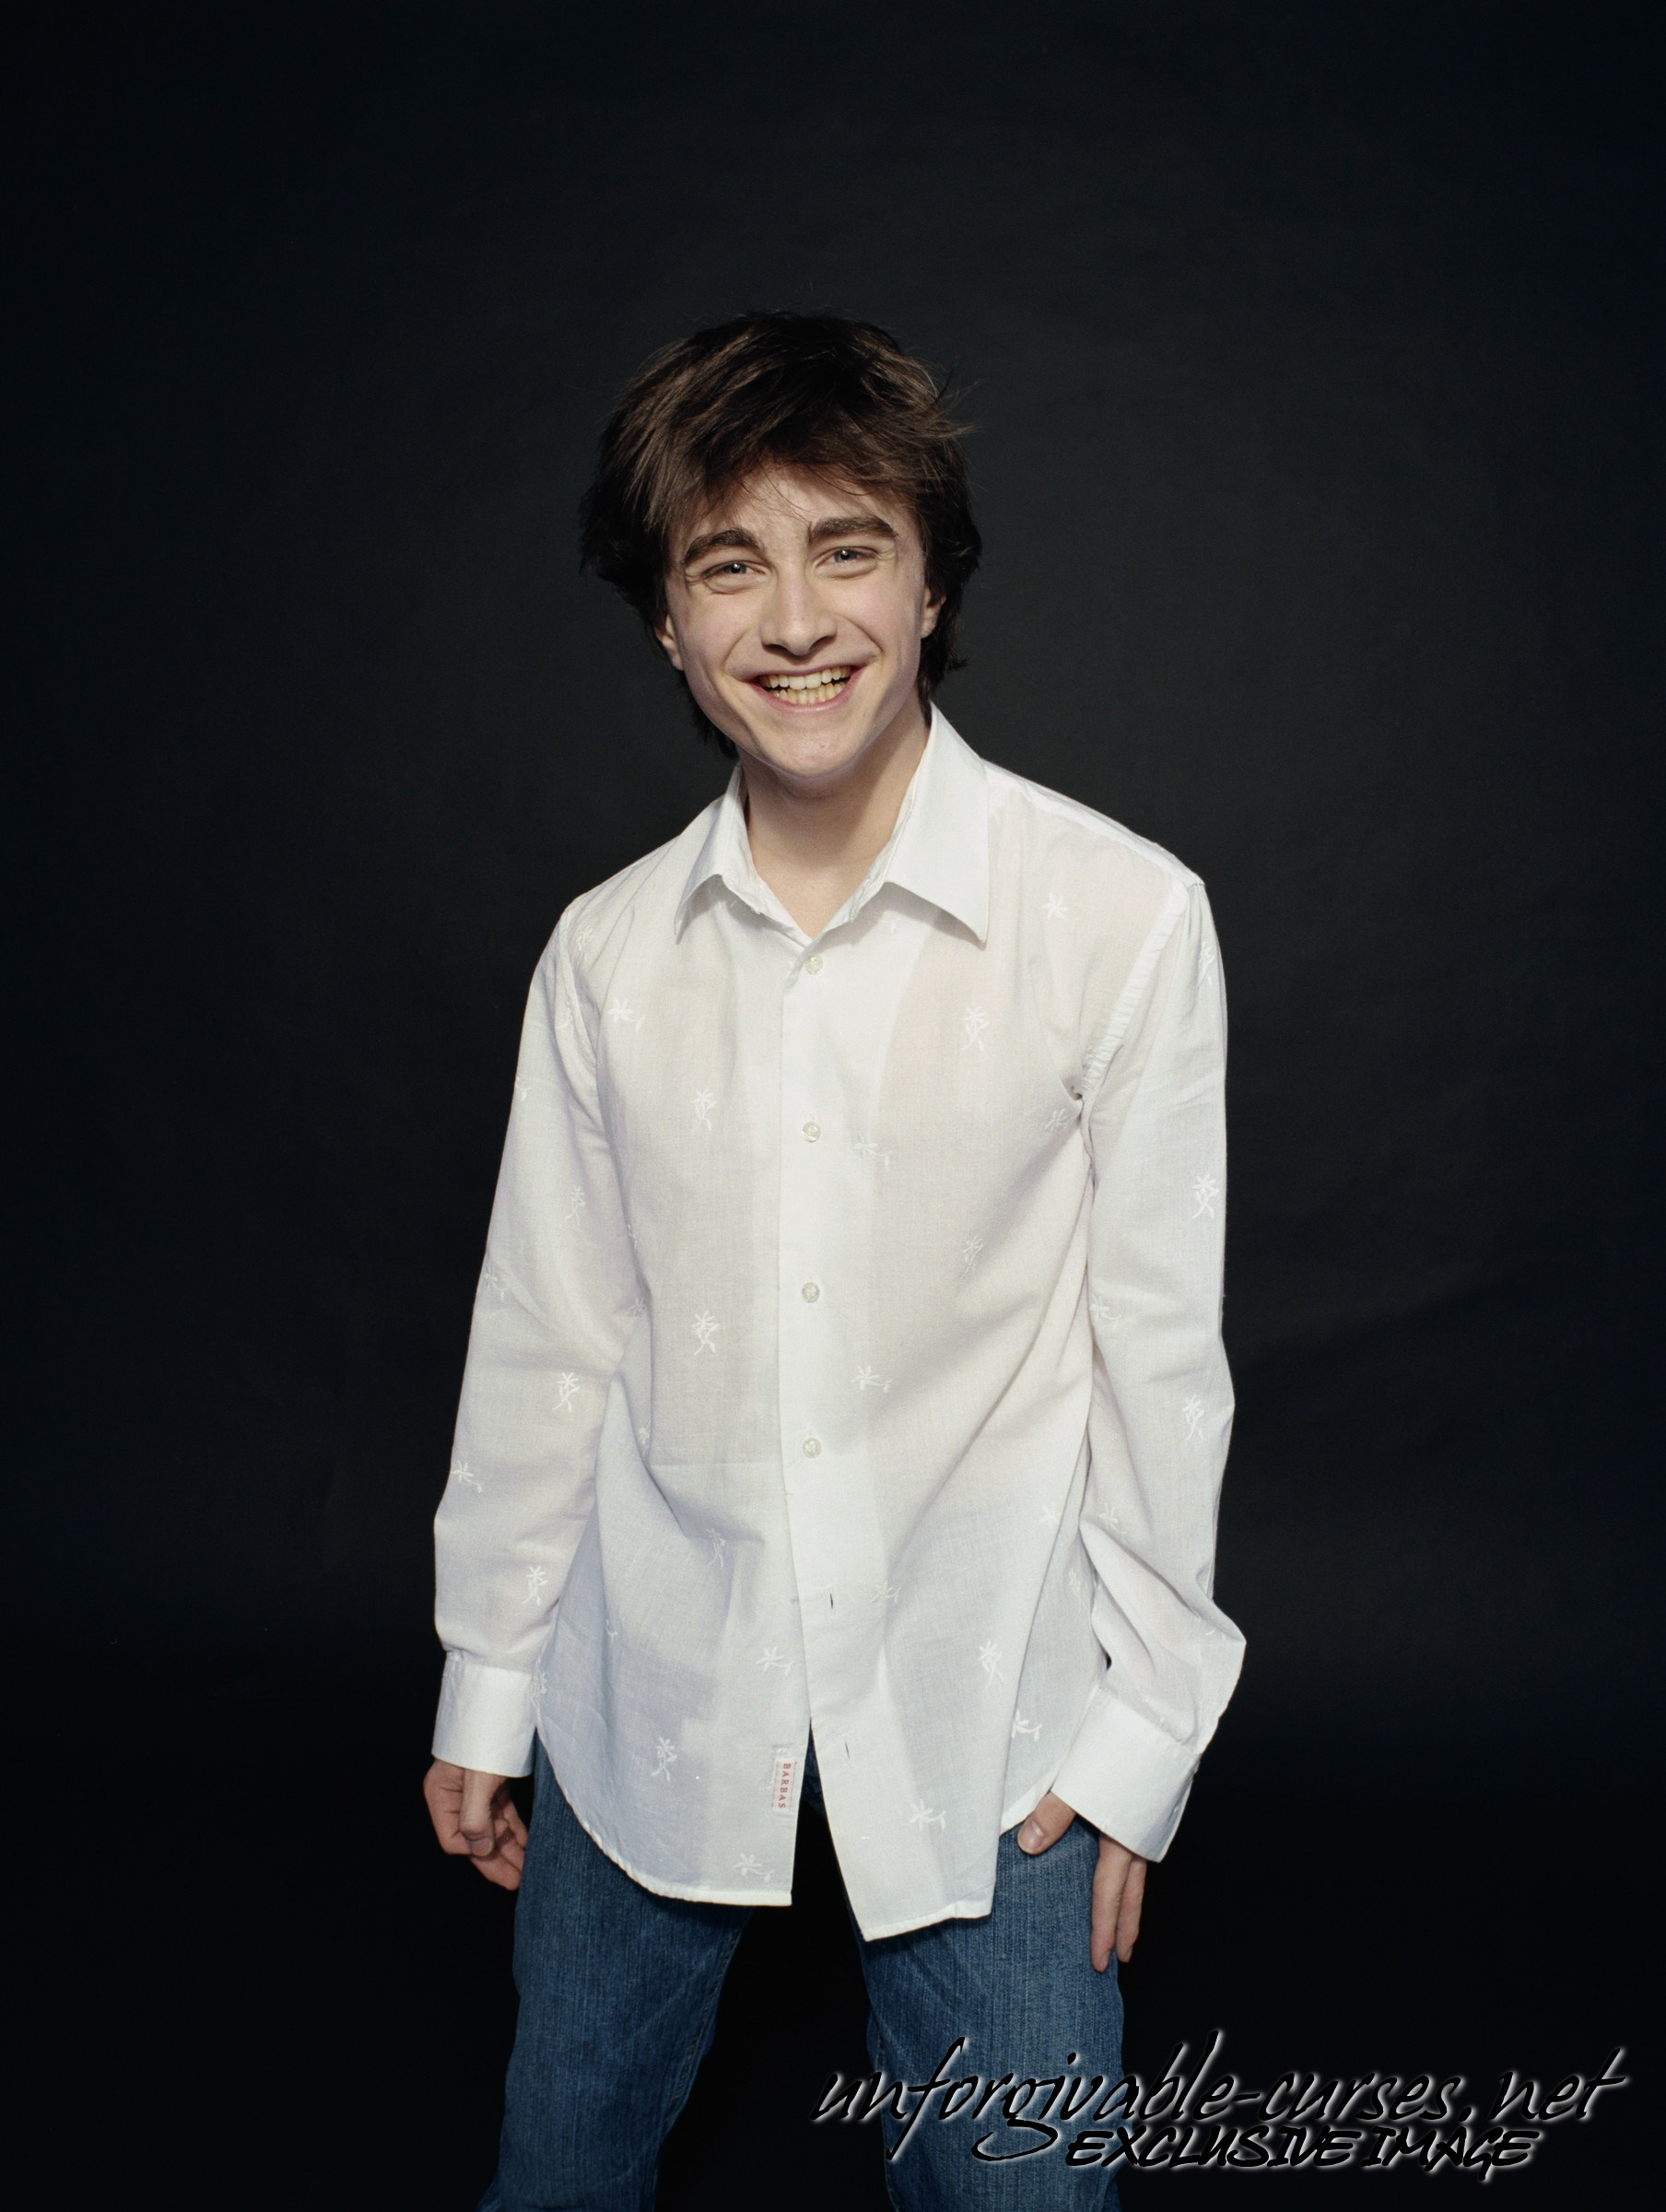 Daniel Radcliffe photo 12 of 517 pics, wallpaper - photo ... Daniel Radcliffe